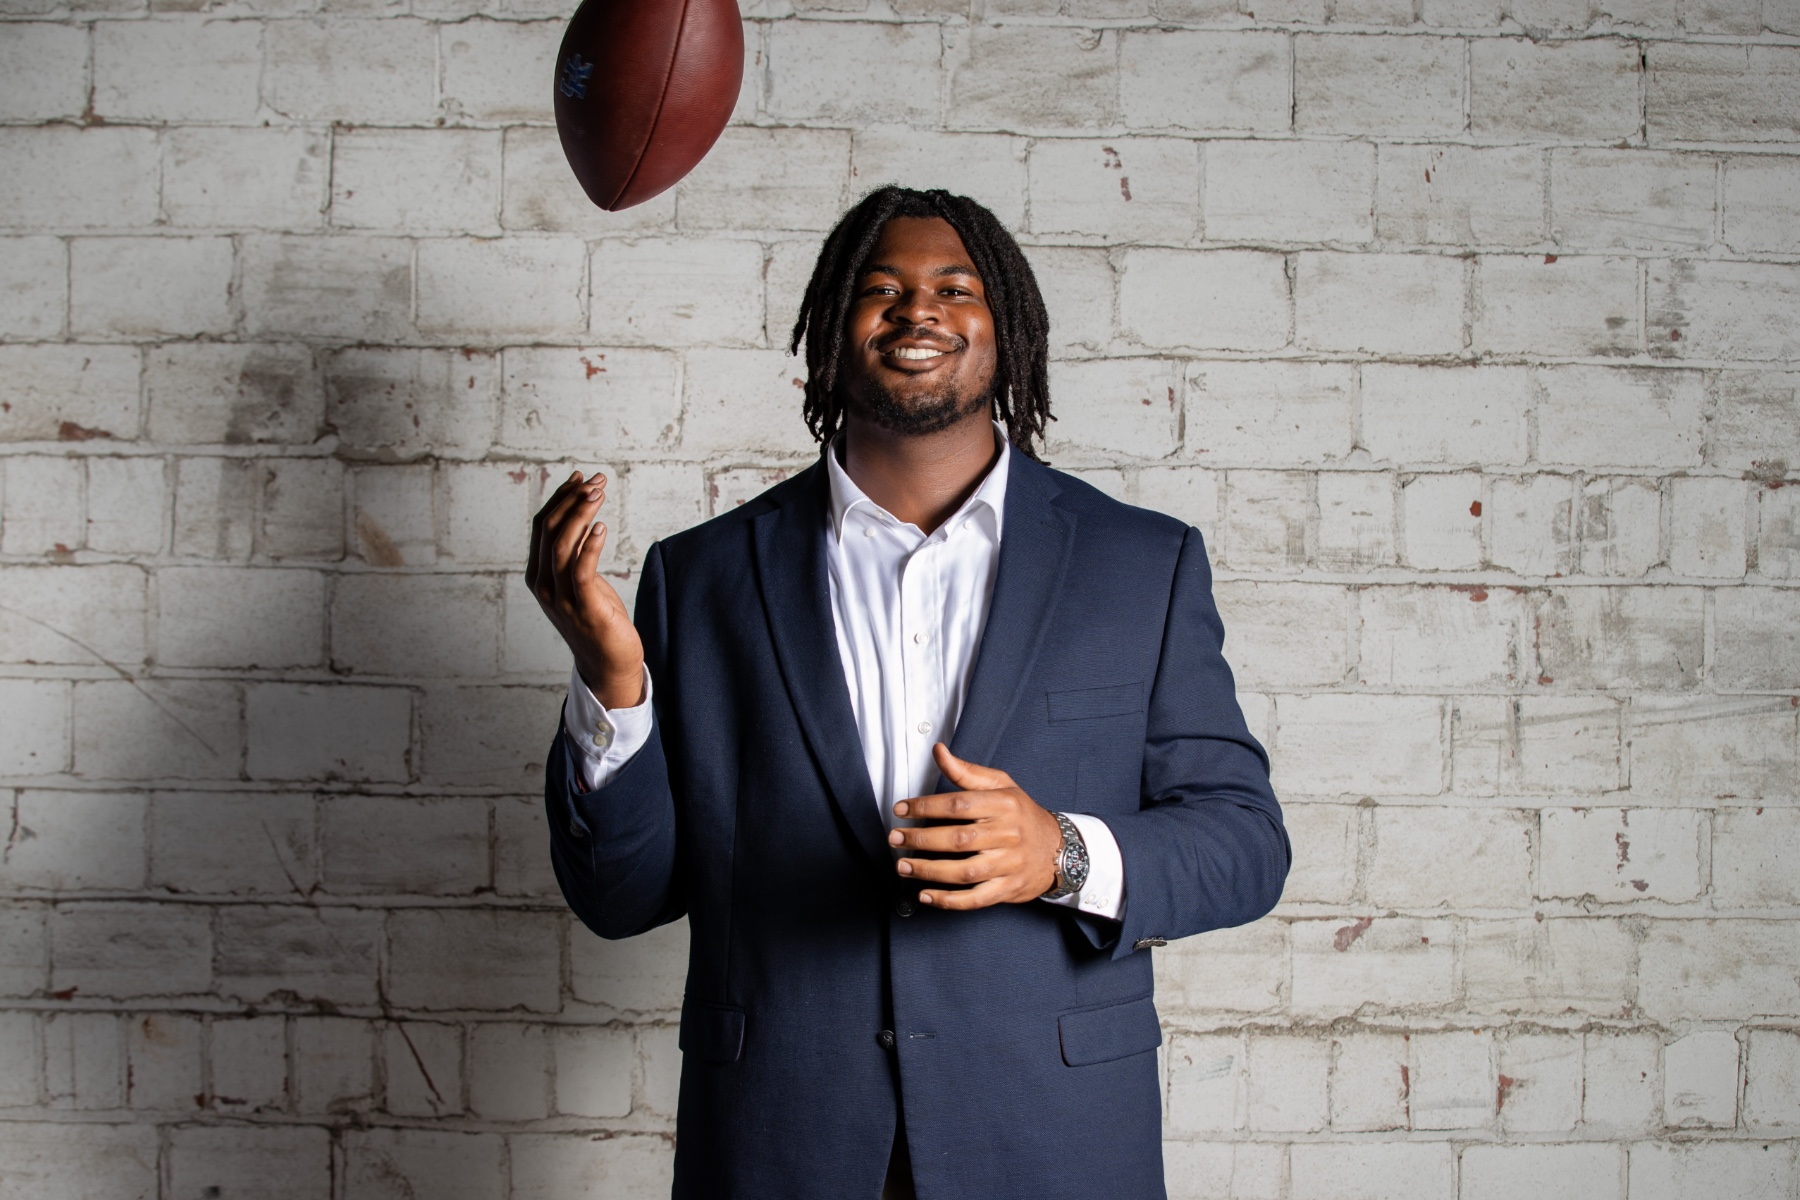 Kenneth Horsey, a young black man with dreadlocks, stands and smiles as he flips a football in the air. He is wearing a grey blazer, white button-down, and silver watch.